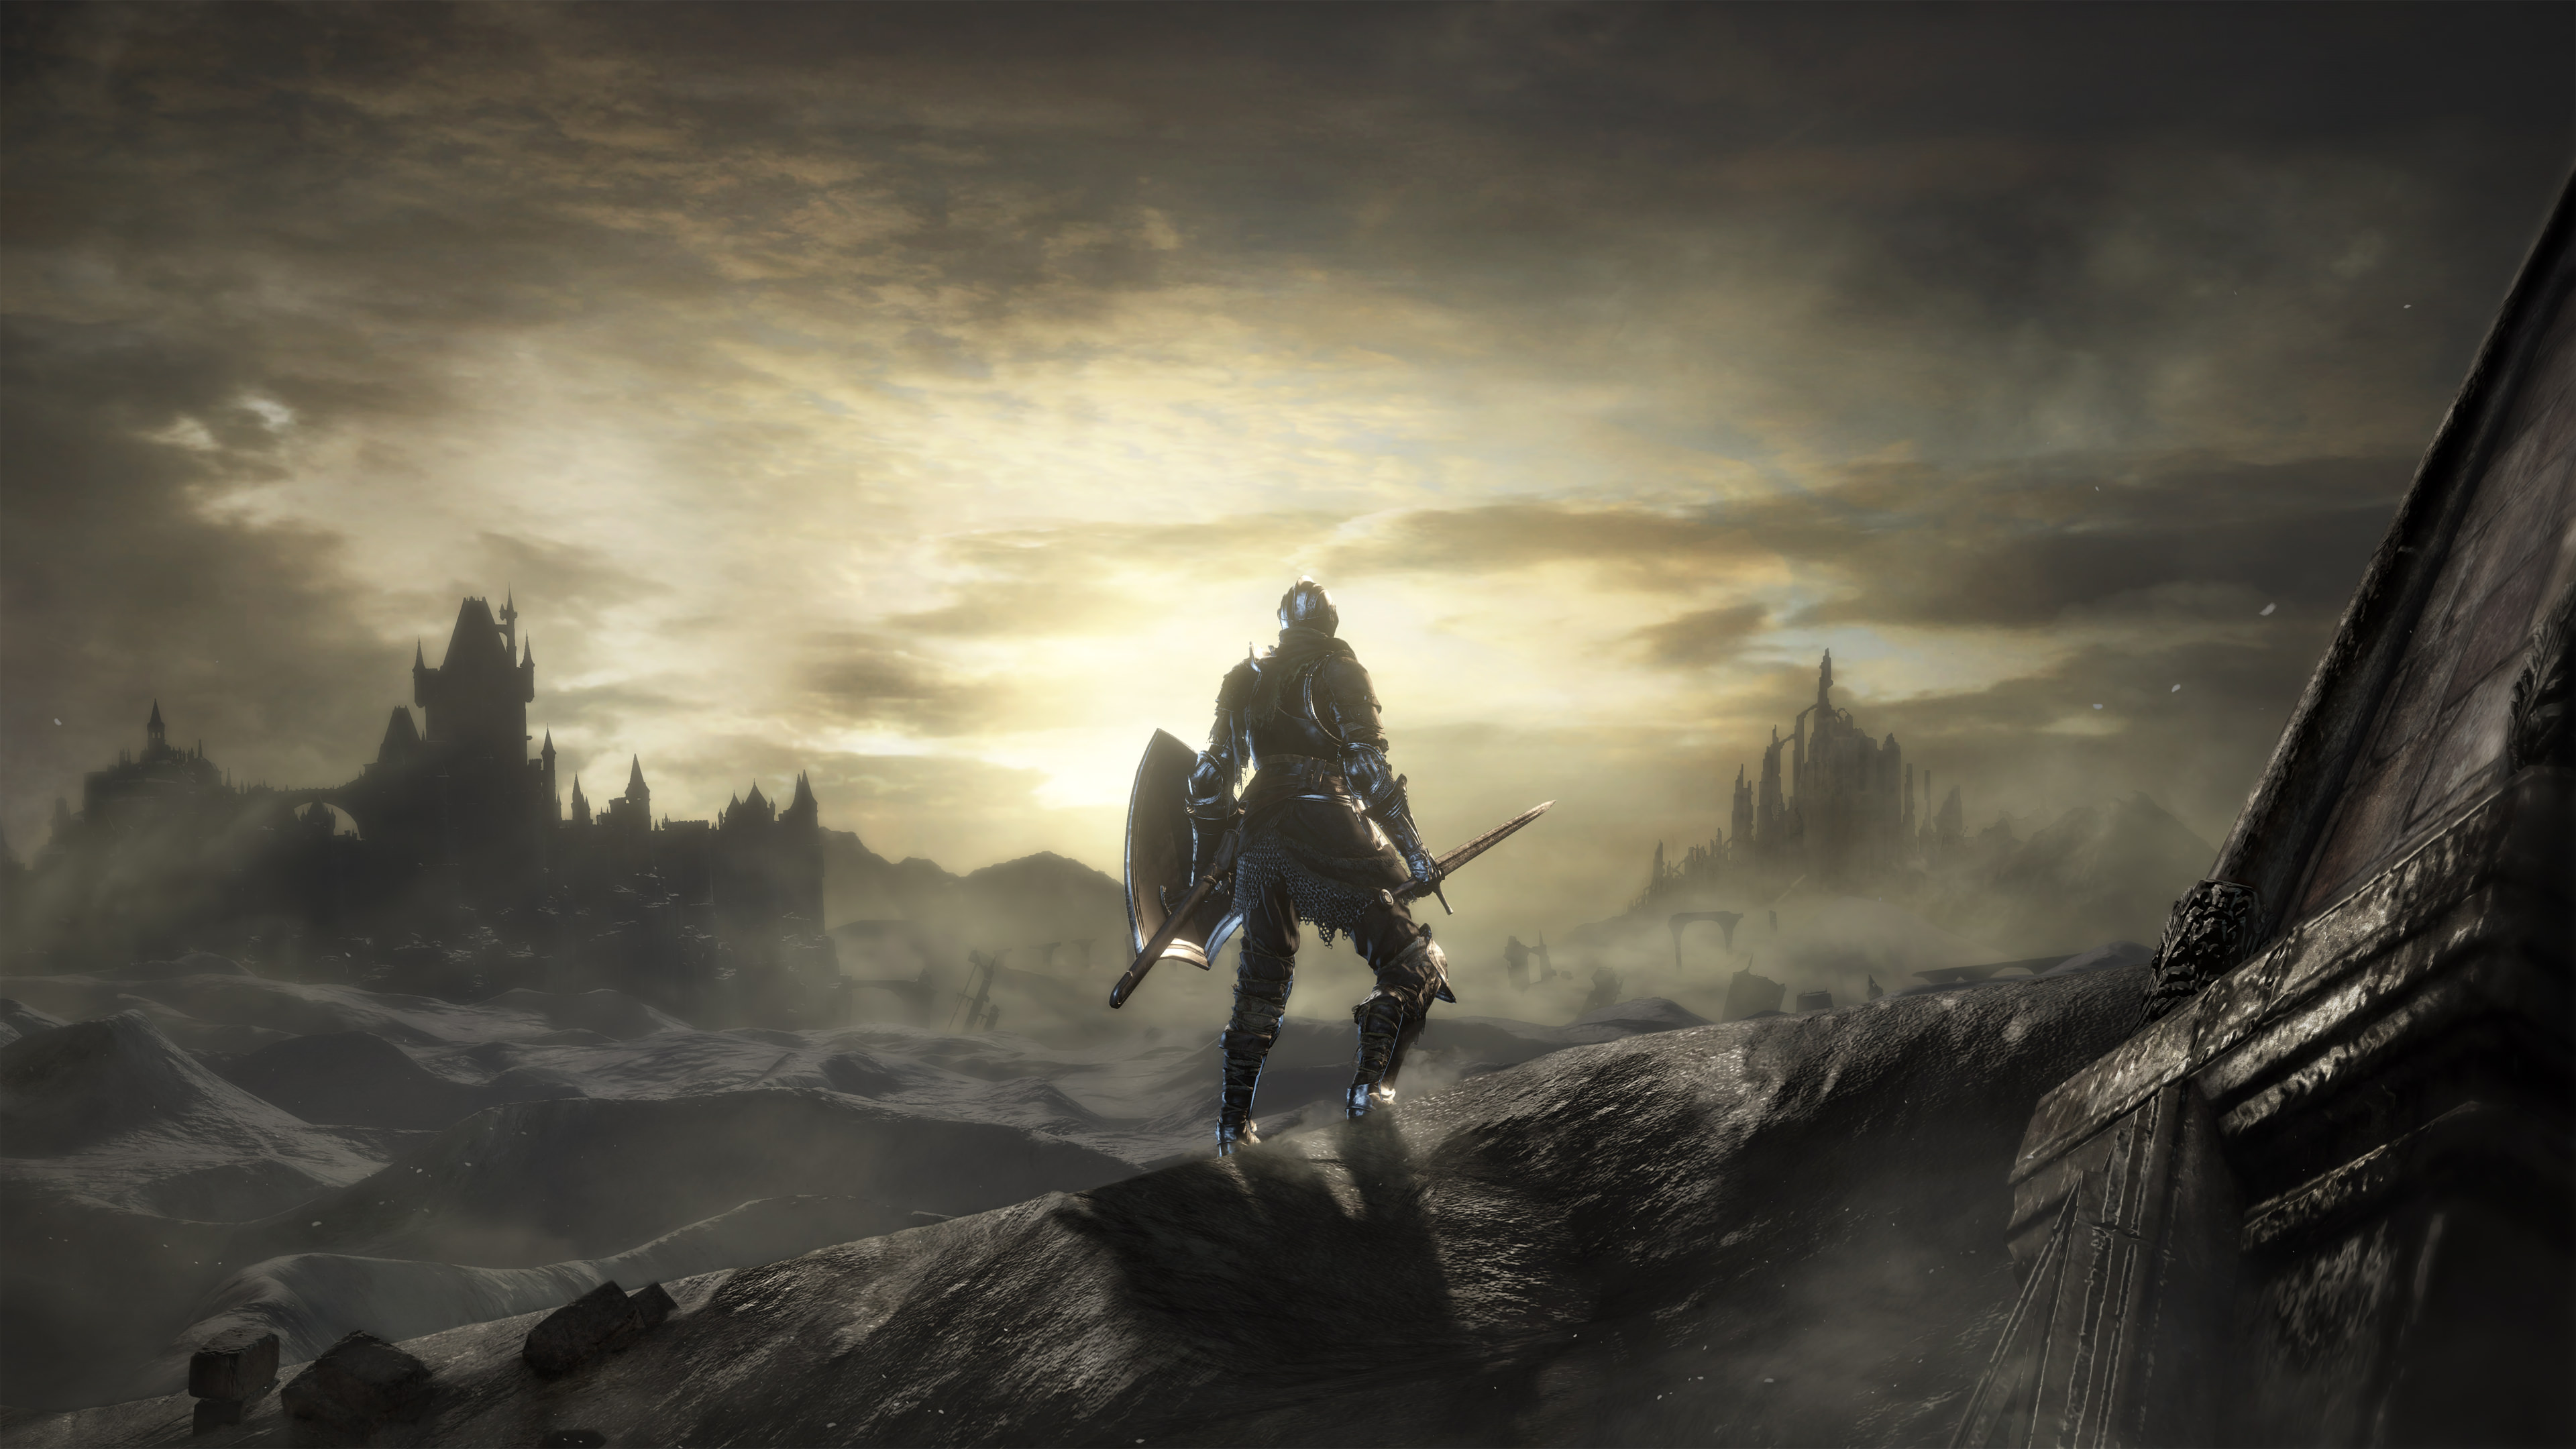 Dark Souls 3 Hd Wallpaper: Dark Souls 3 2017, HD Games, 4k Wallpapers, Images